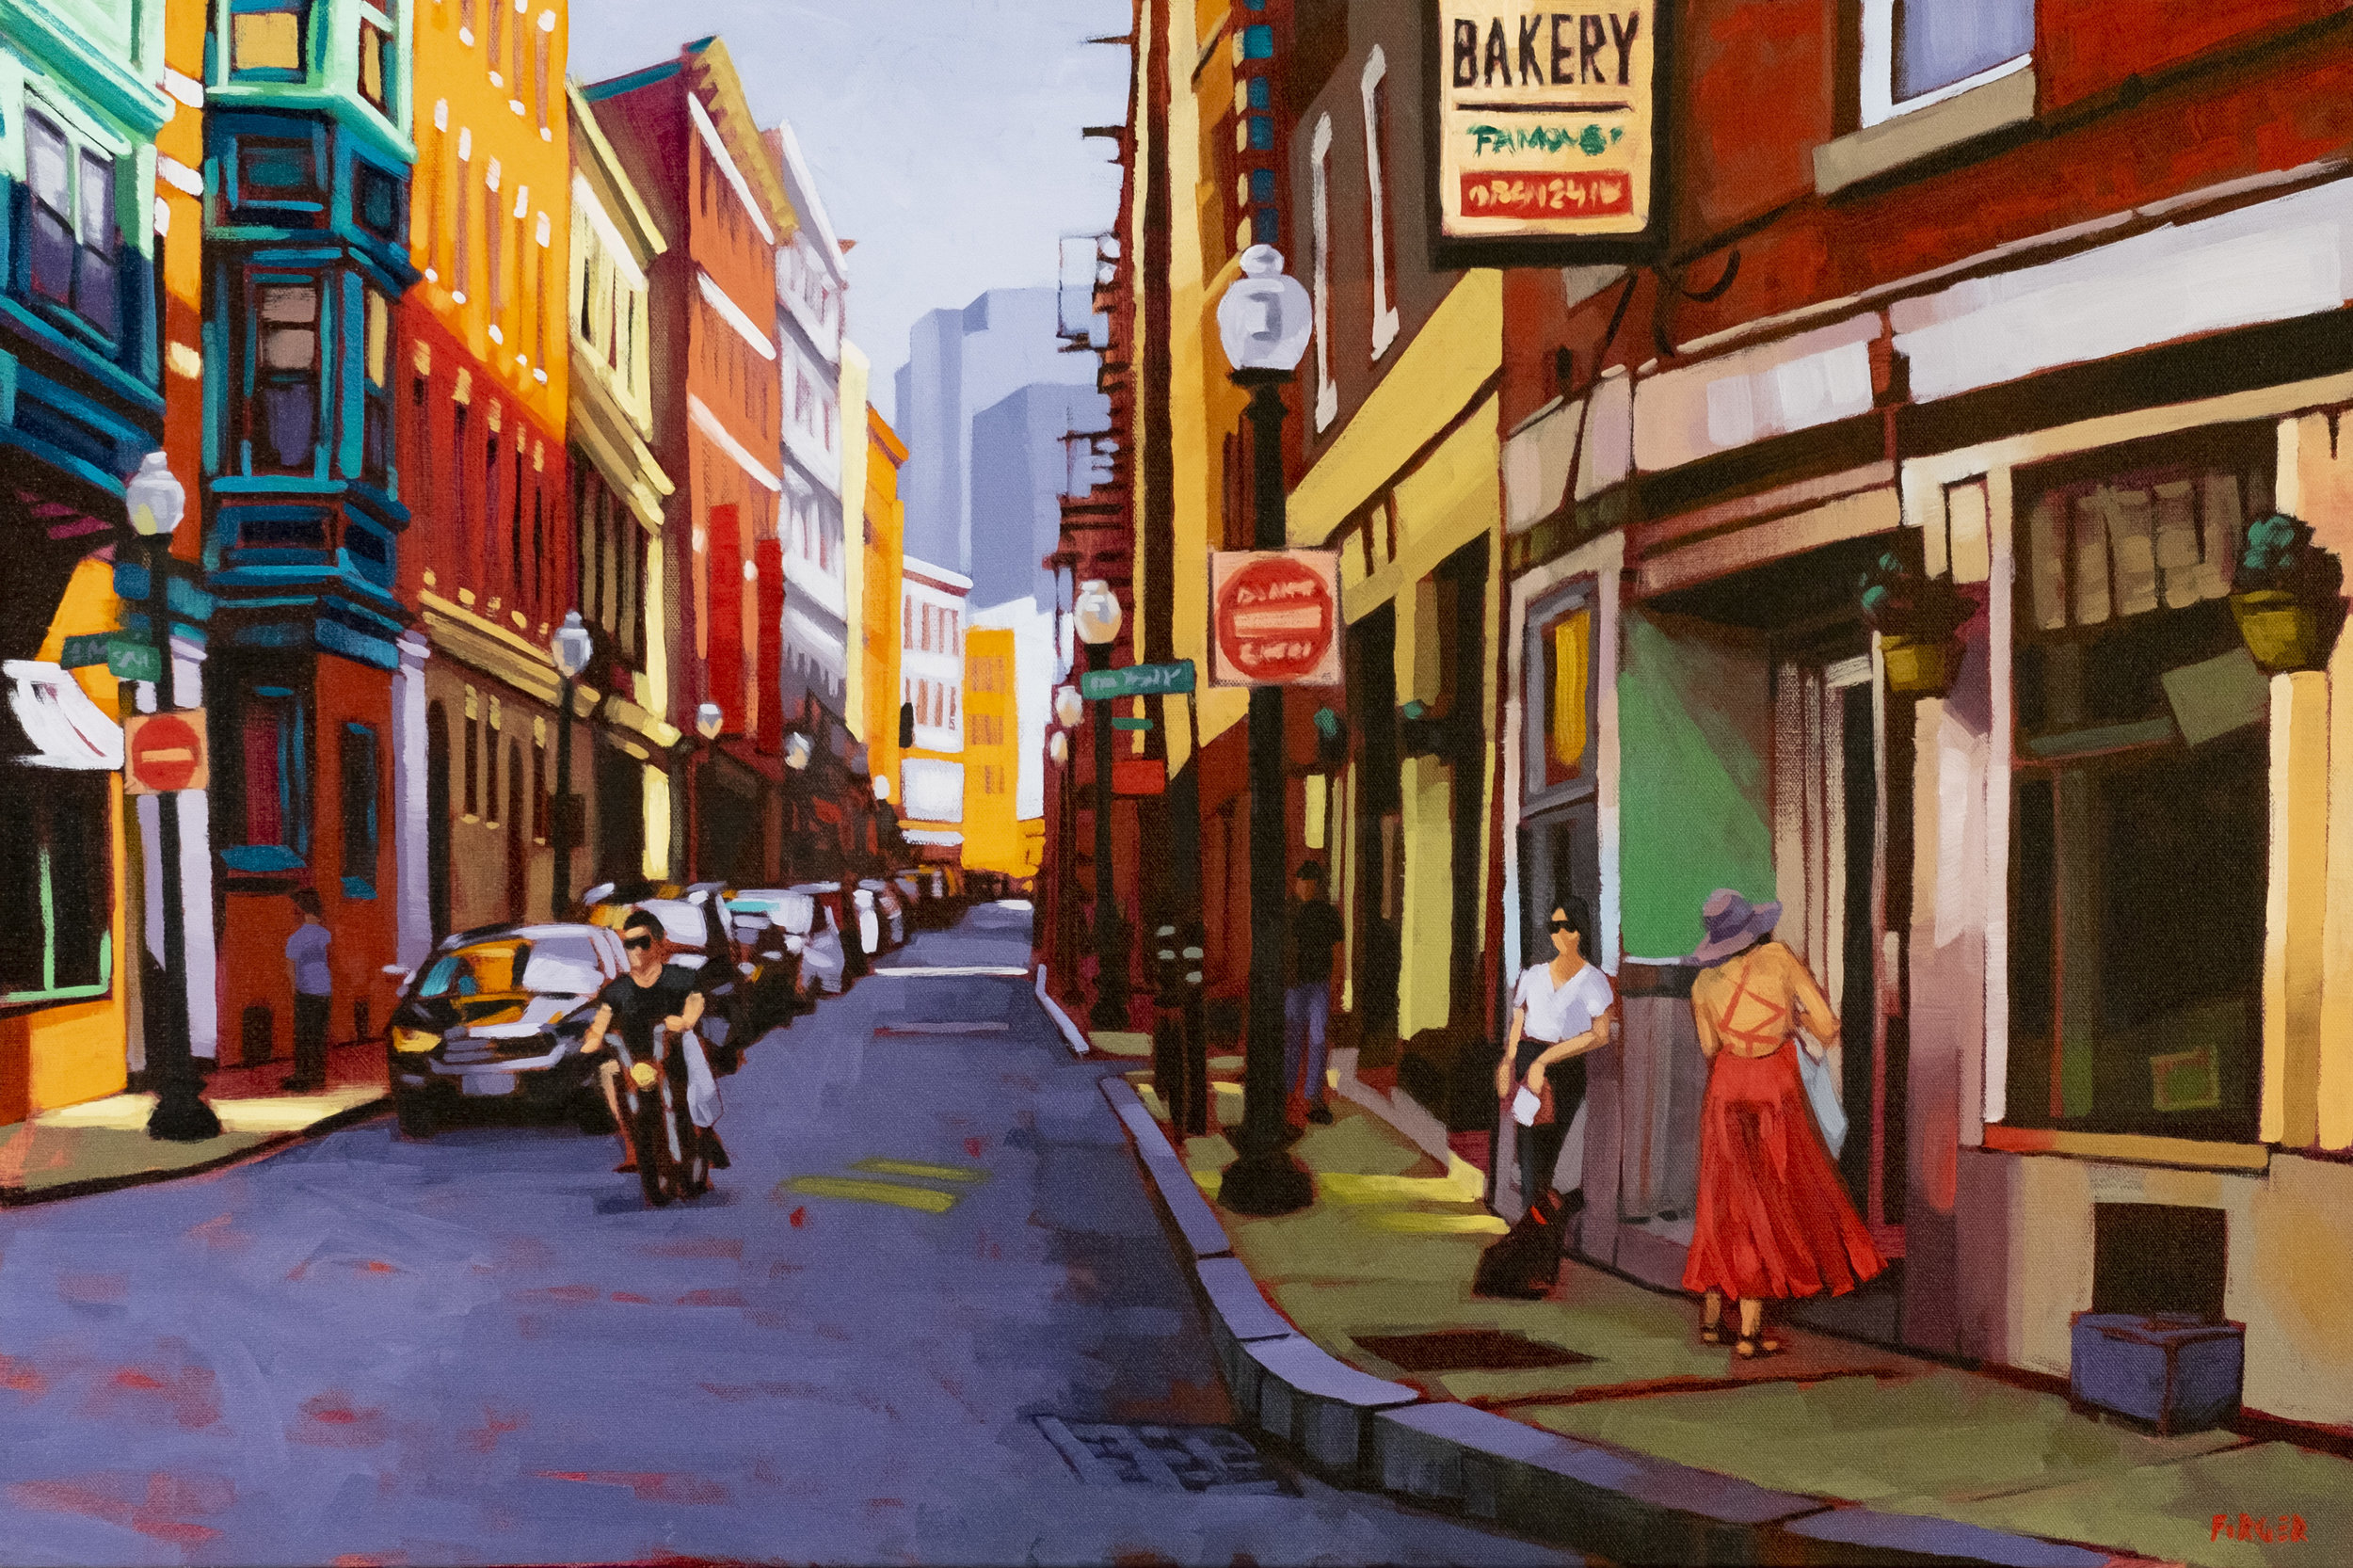 A Friday Sunset in the North End - 24 x 36, Acrylic on Canvas